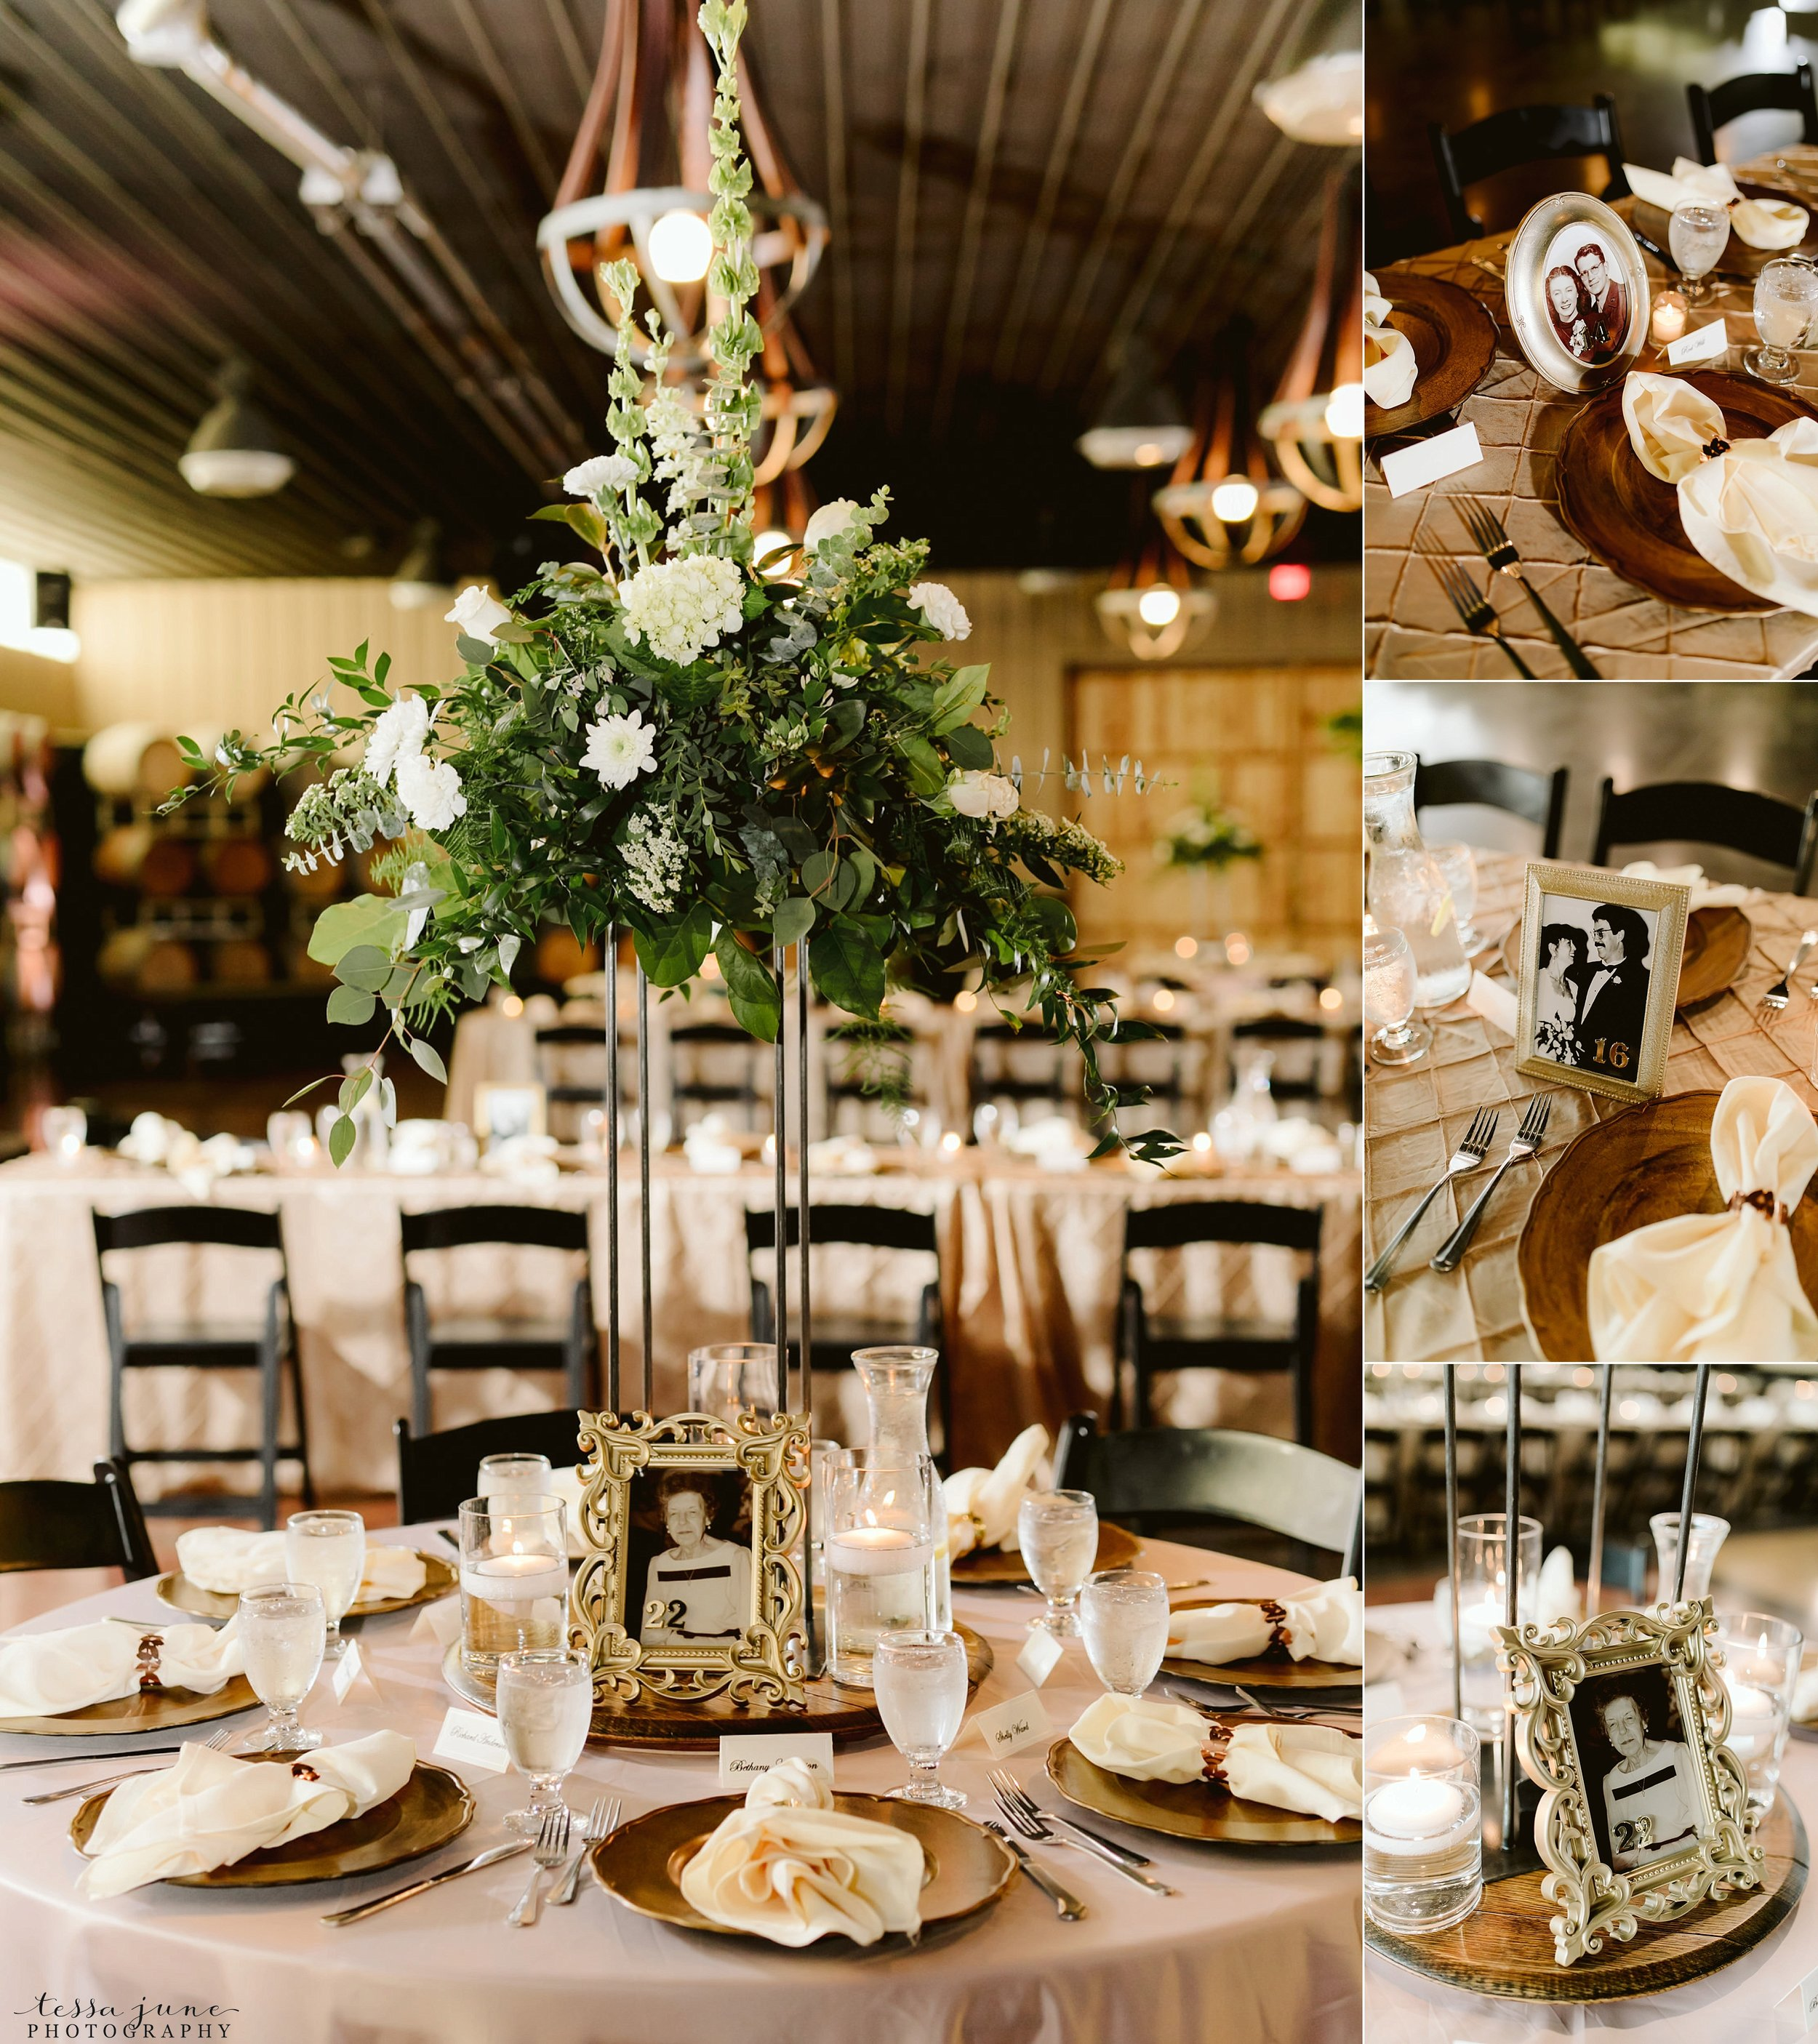 carlos-creek-winery-wedding-alexandria-minnesota-glam-elegant-floral-63.jpg